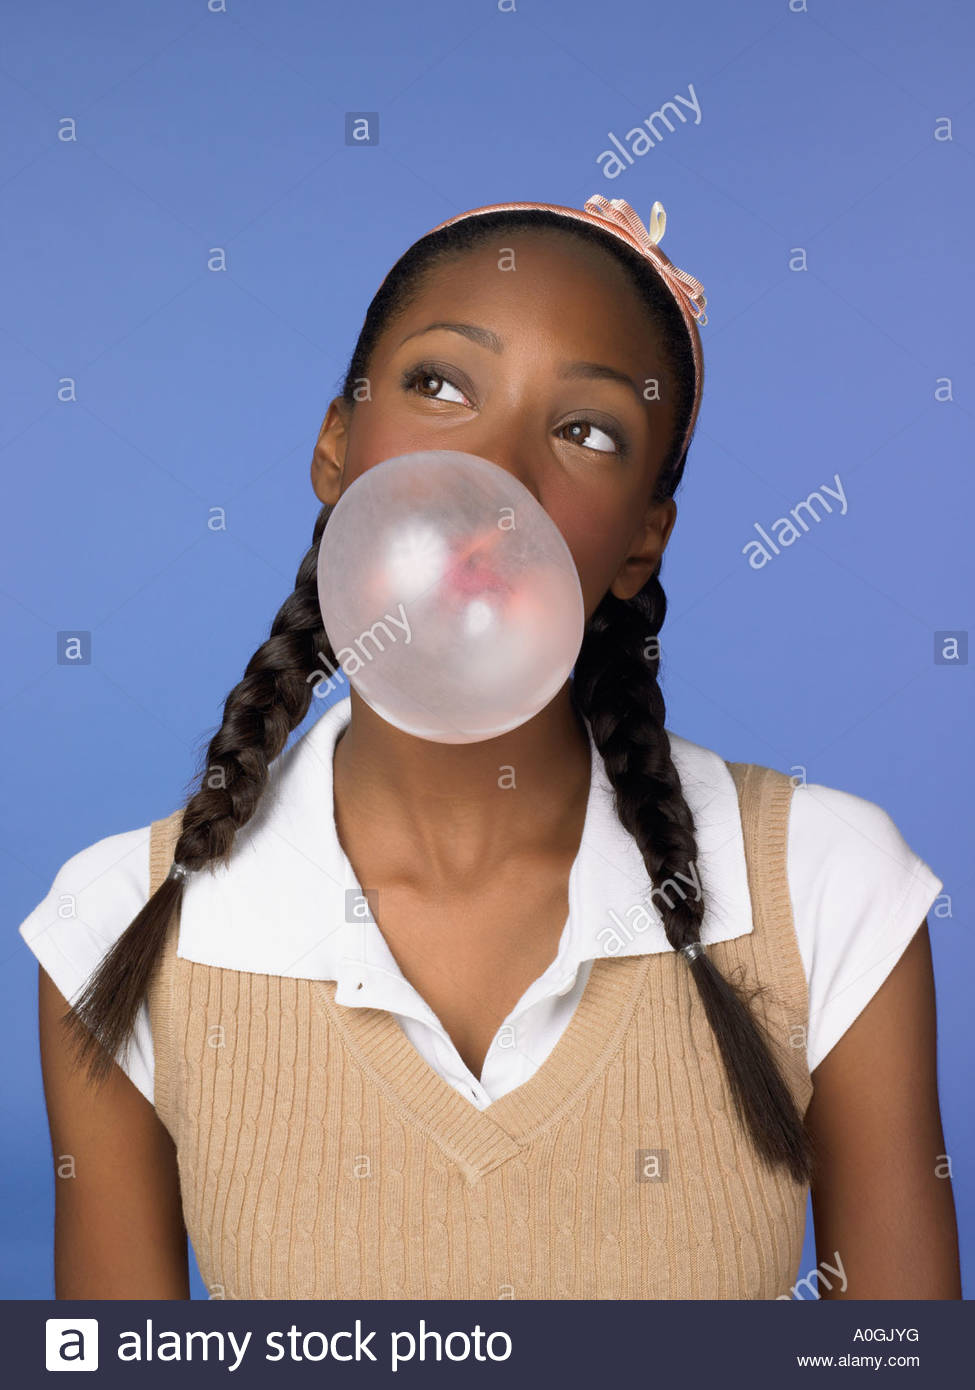 Female african american high school student - Stock Image